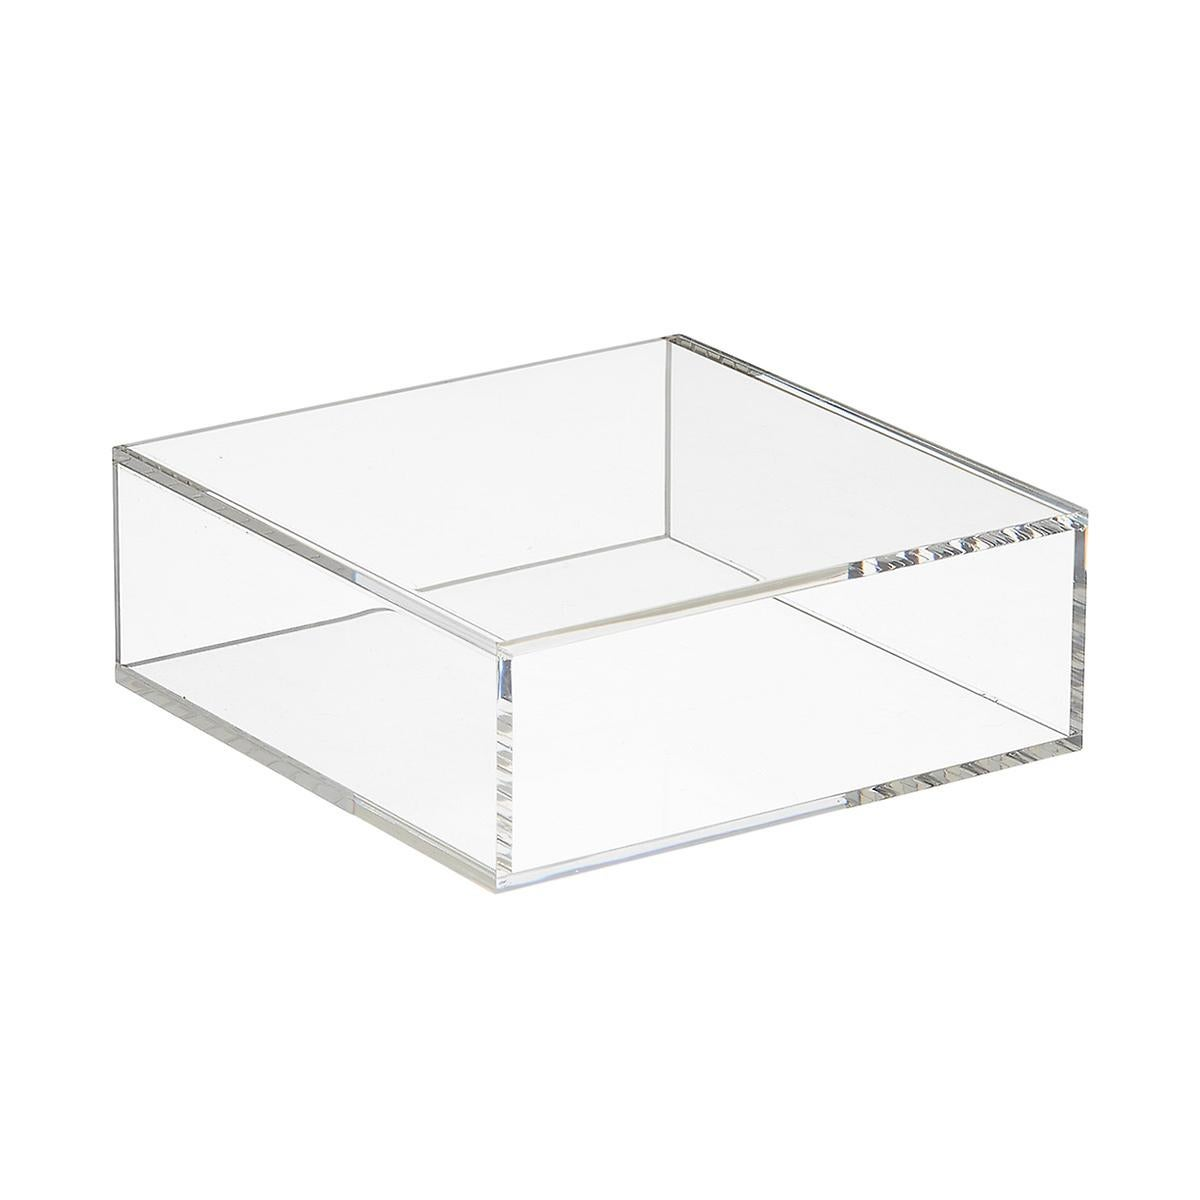 10076321-square-4-sided-riser-acryli